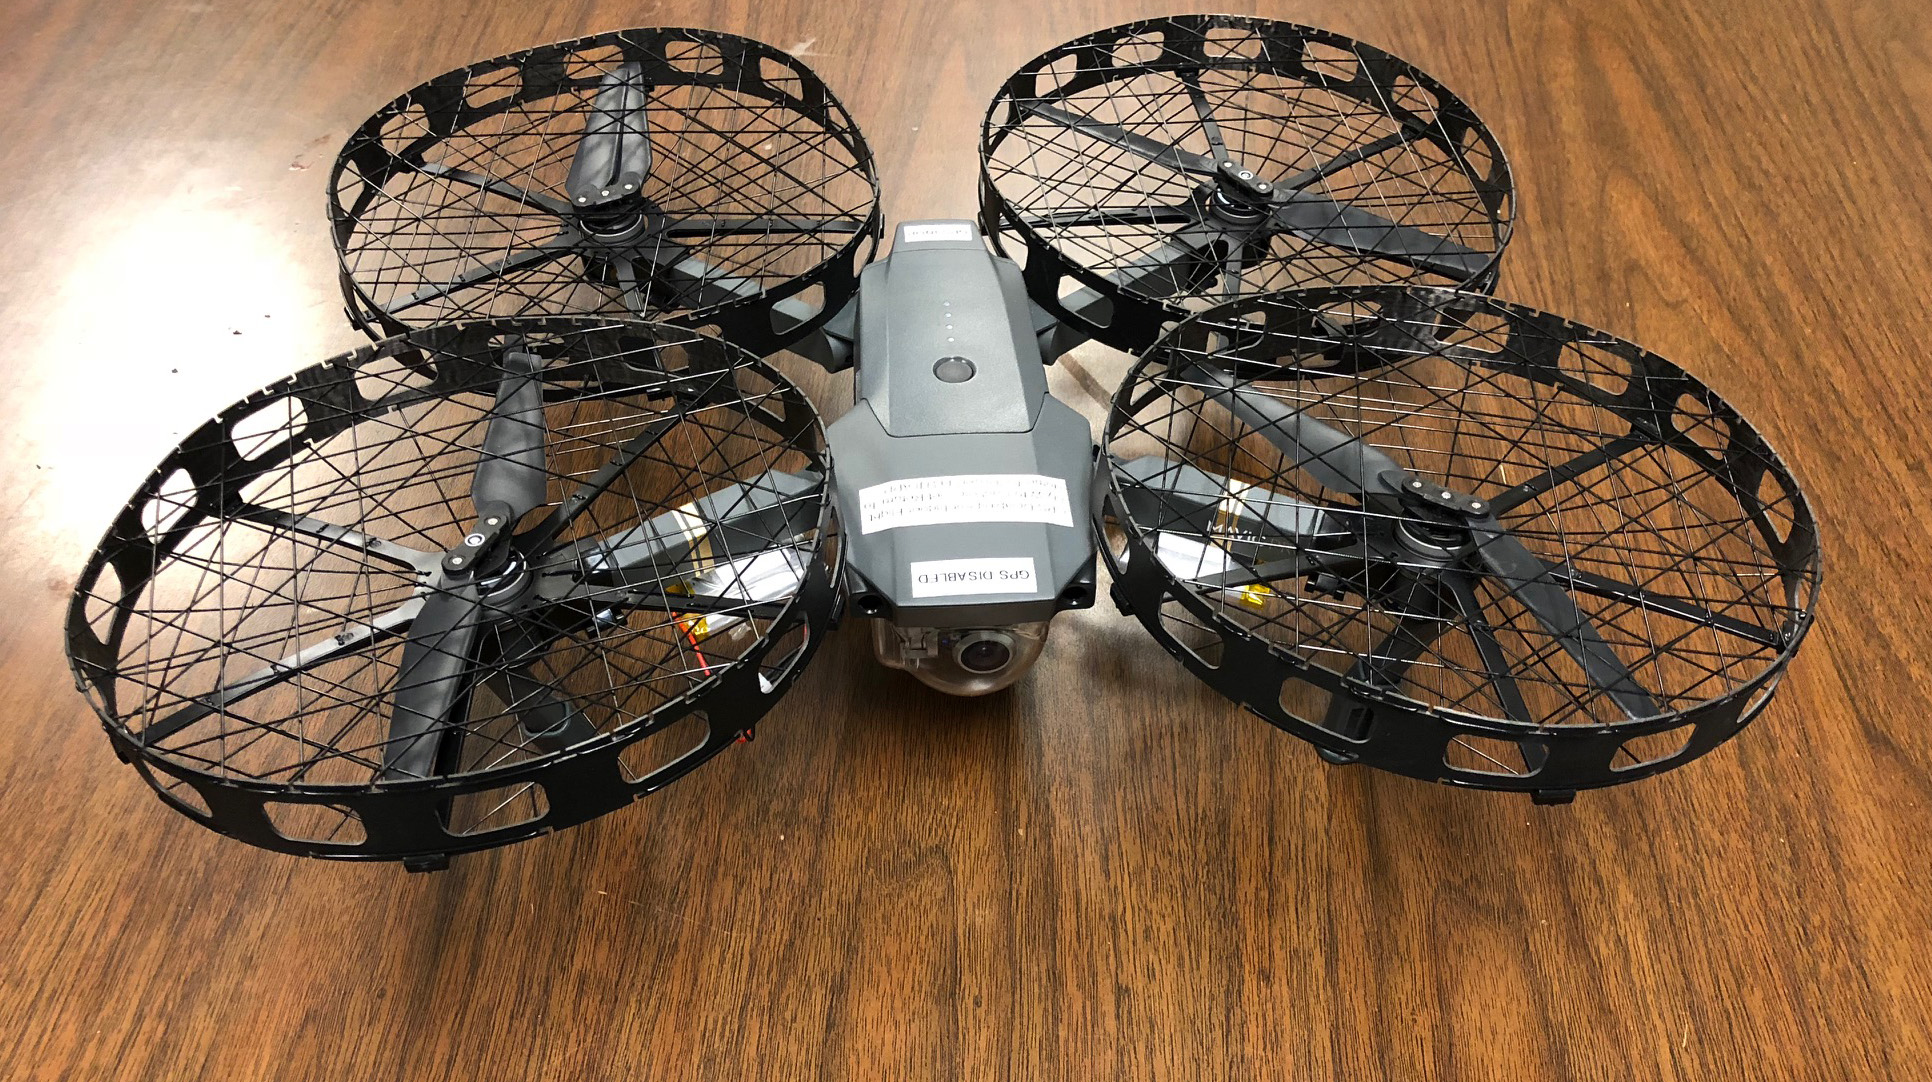 A DJI Mavic fitted with propeller cages for indoor operations. Photo courtesy of Cecil County Sheriff (Maryland).